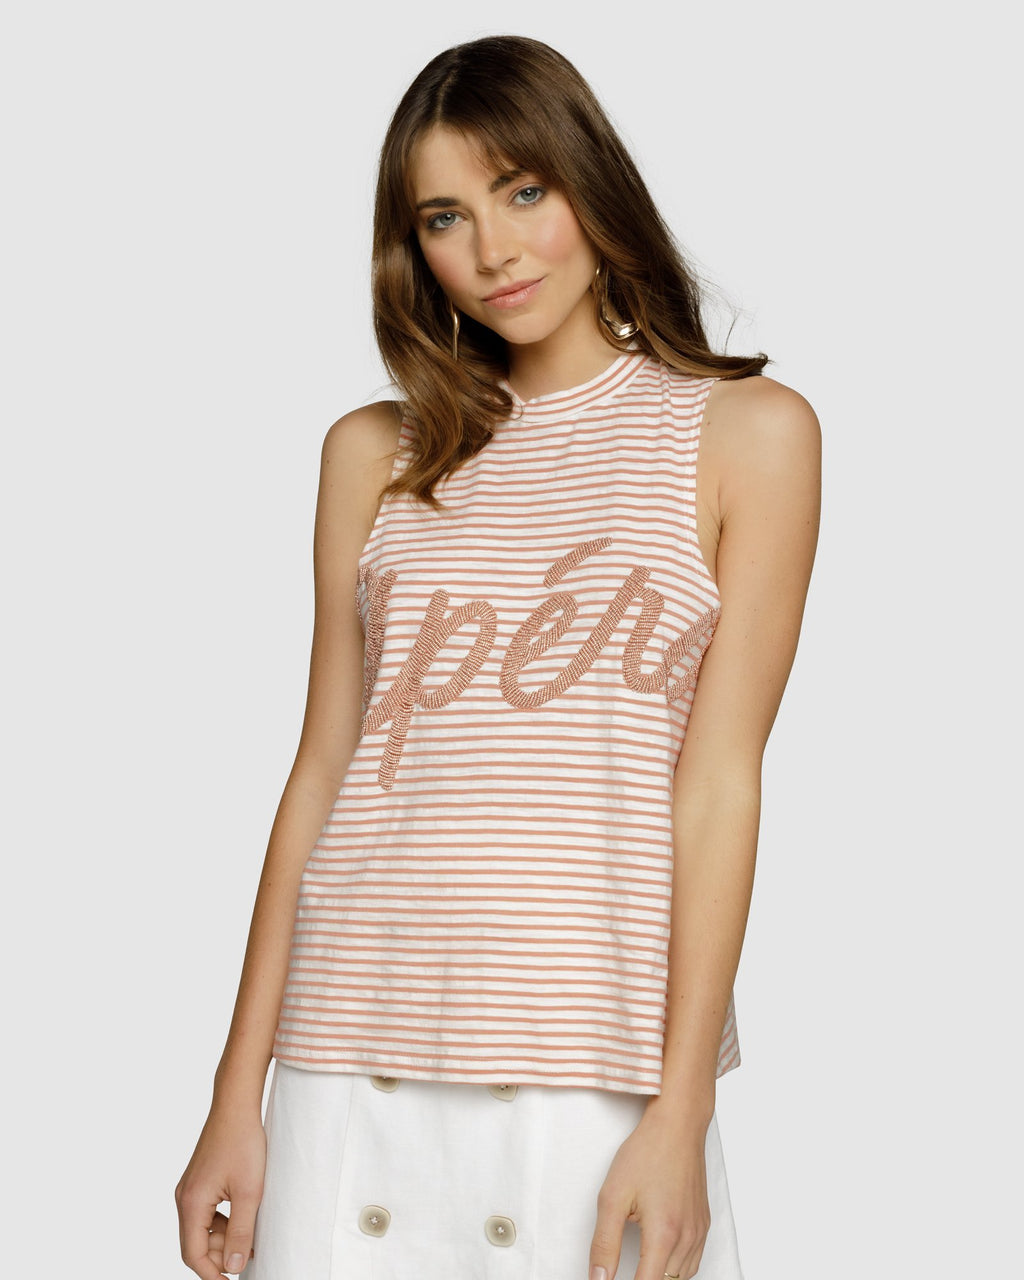 Grande Beaded Tank Top - Apero Dusty Pink/White Stripe